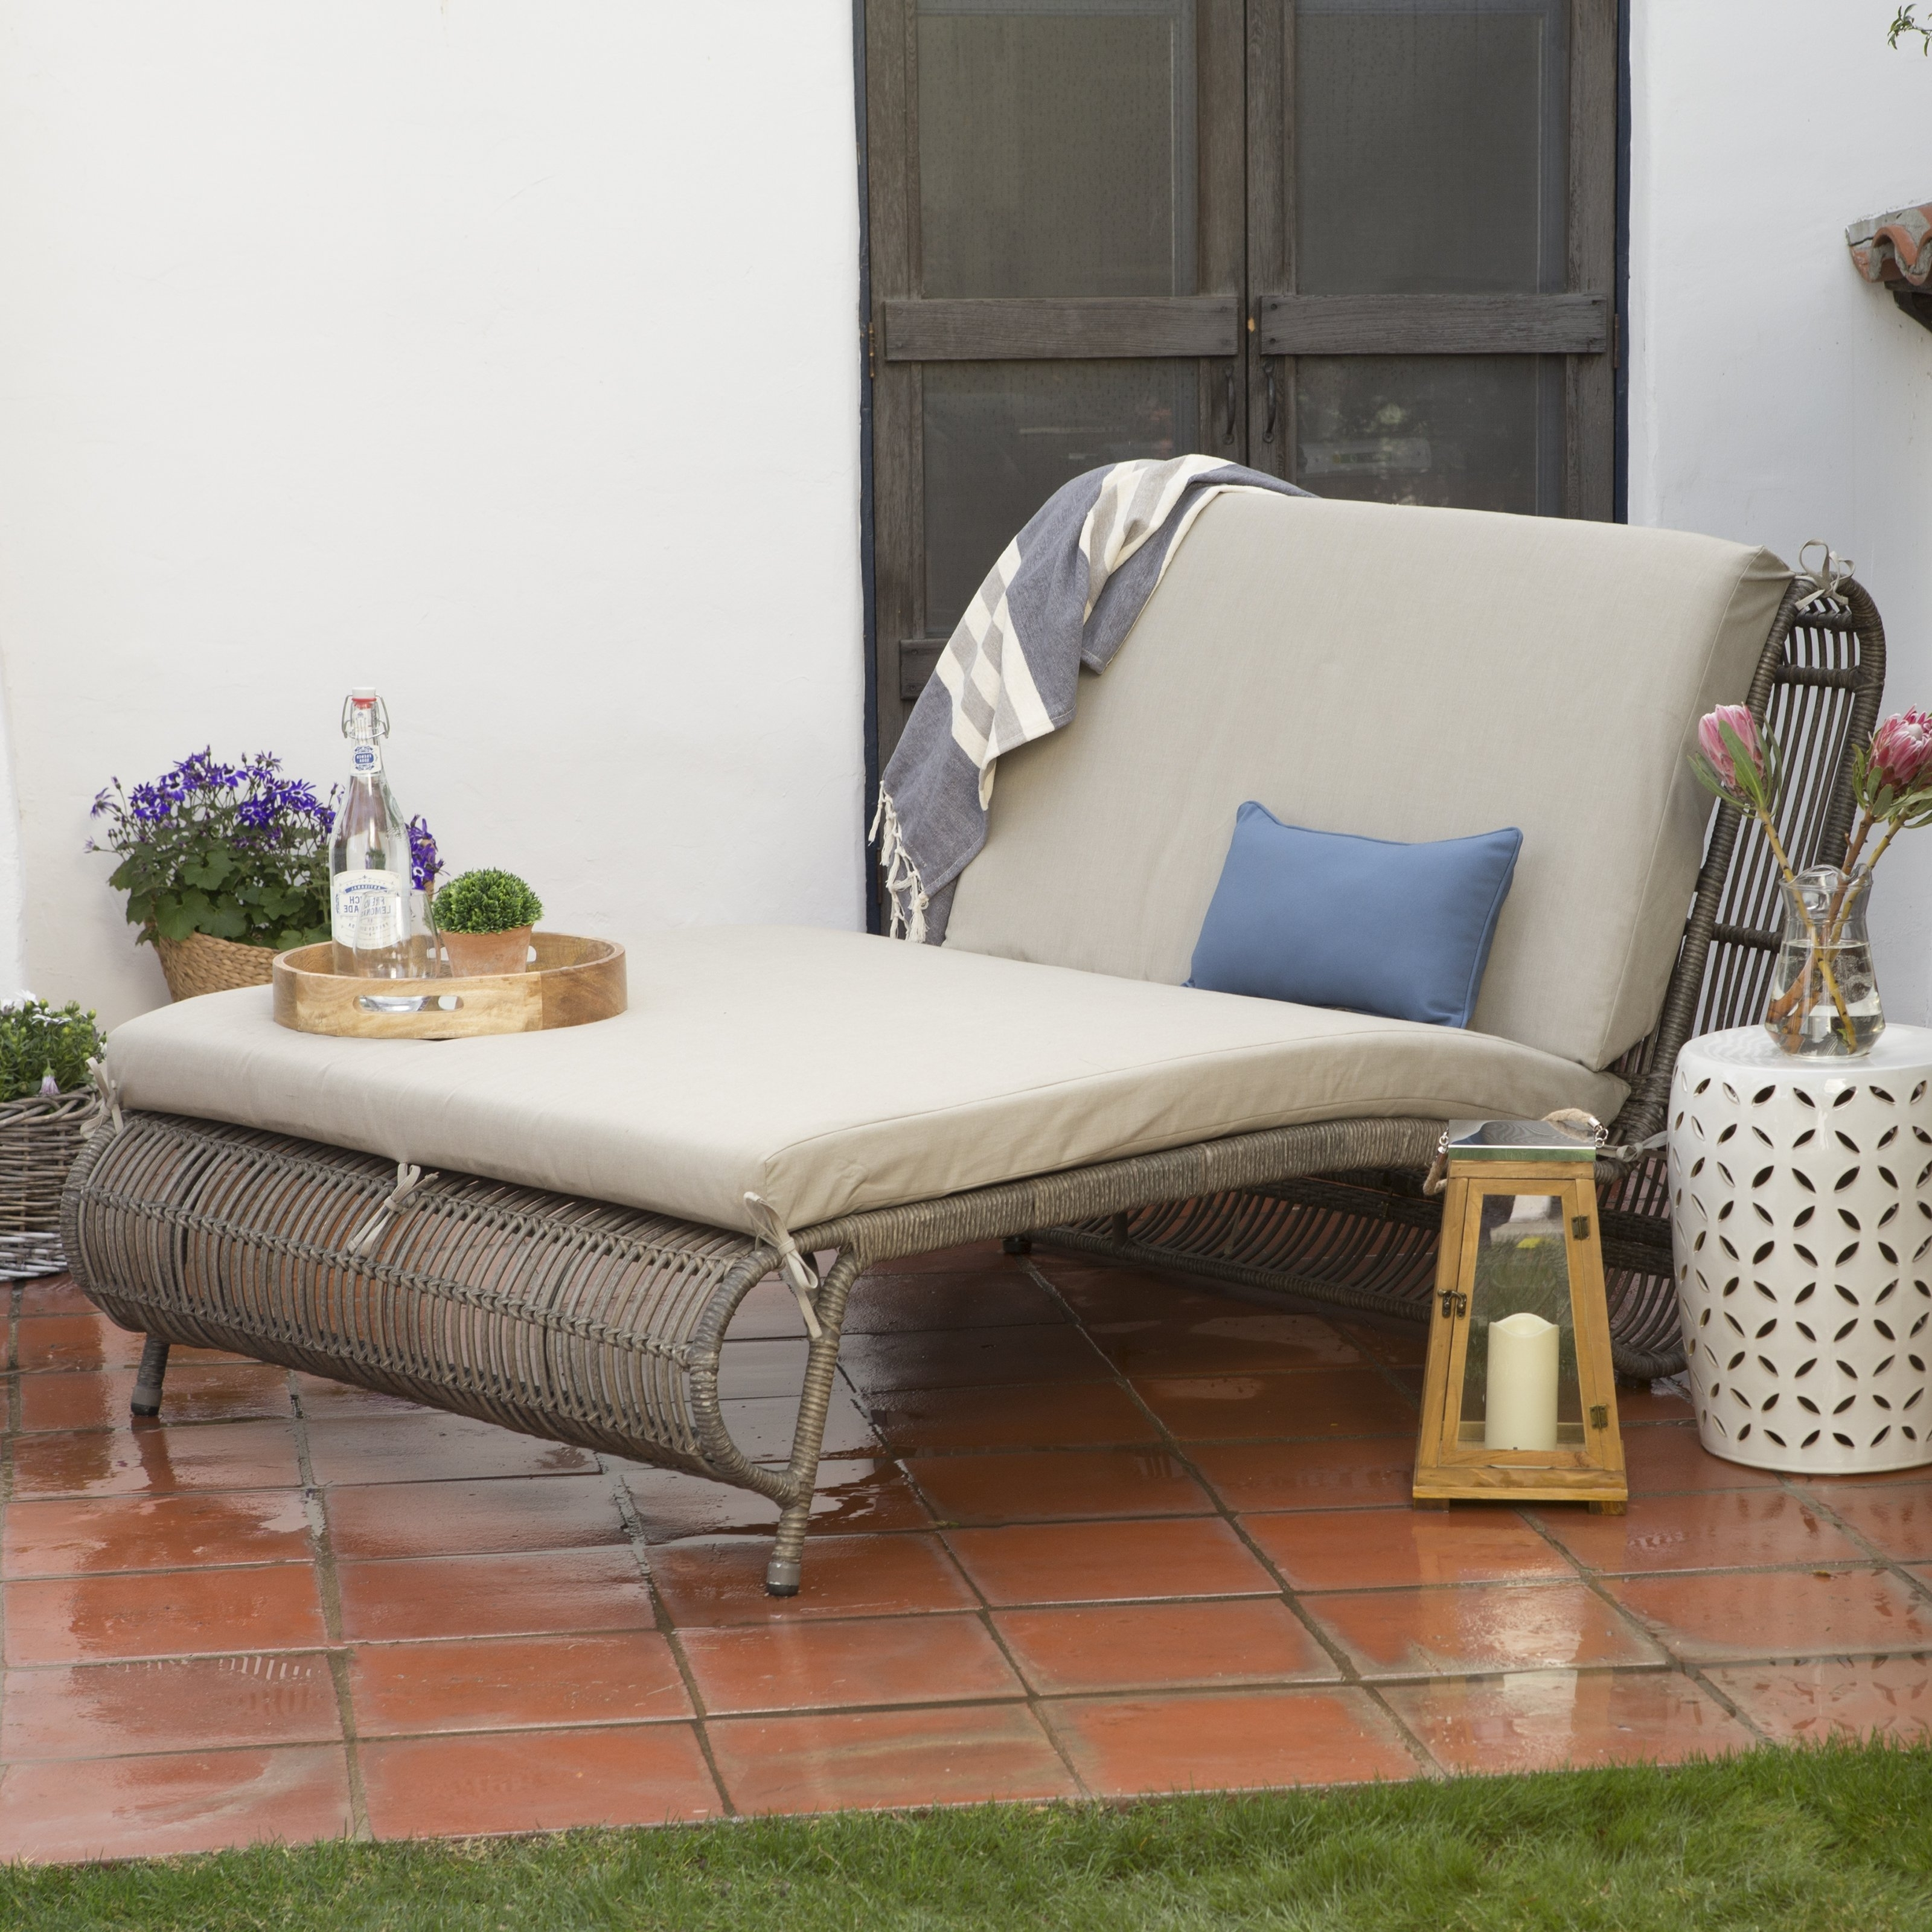 Famous Double Chaise Lounges For Living Room Pertaining To Beautiful Chaise Lounge Chairs Outdoor (44 Photos) (View 13 of 15)